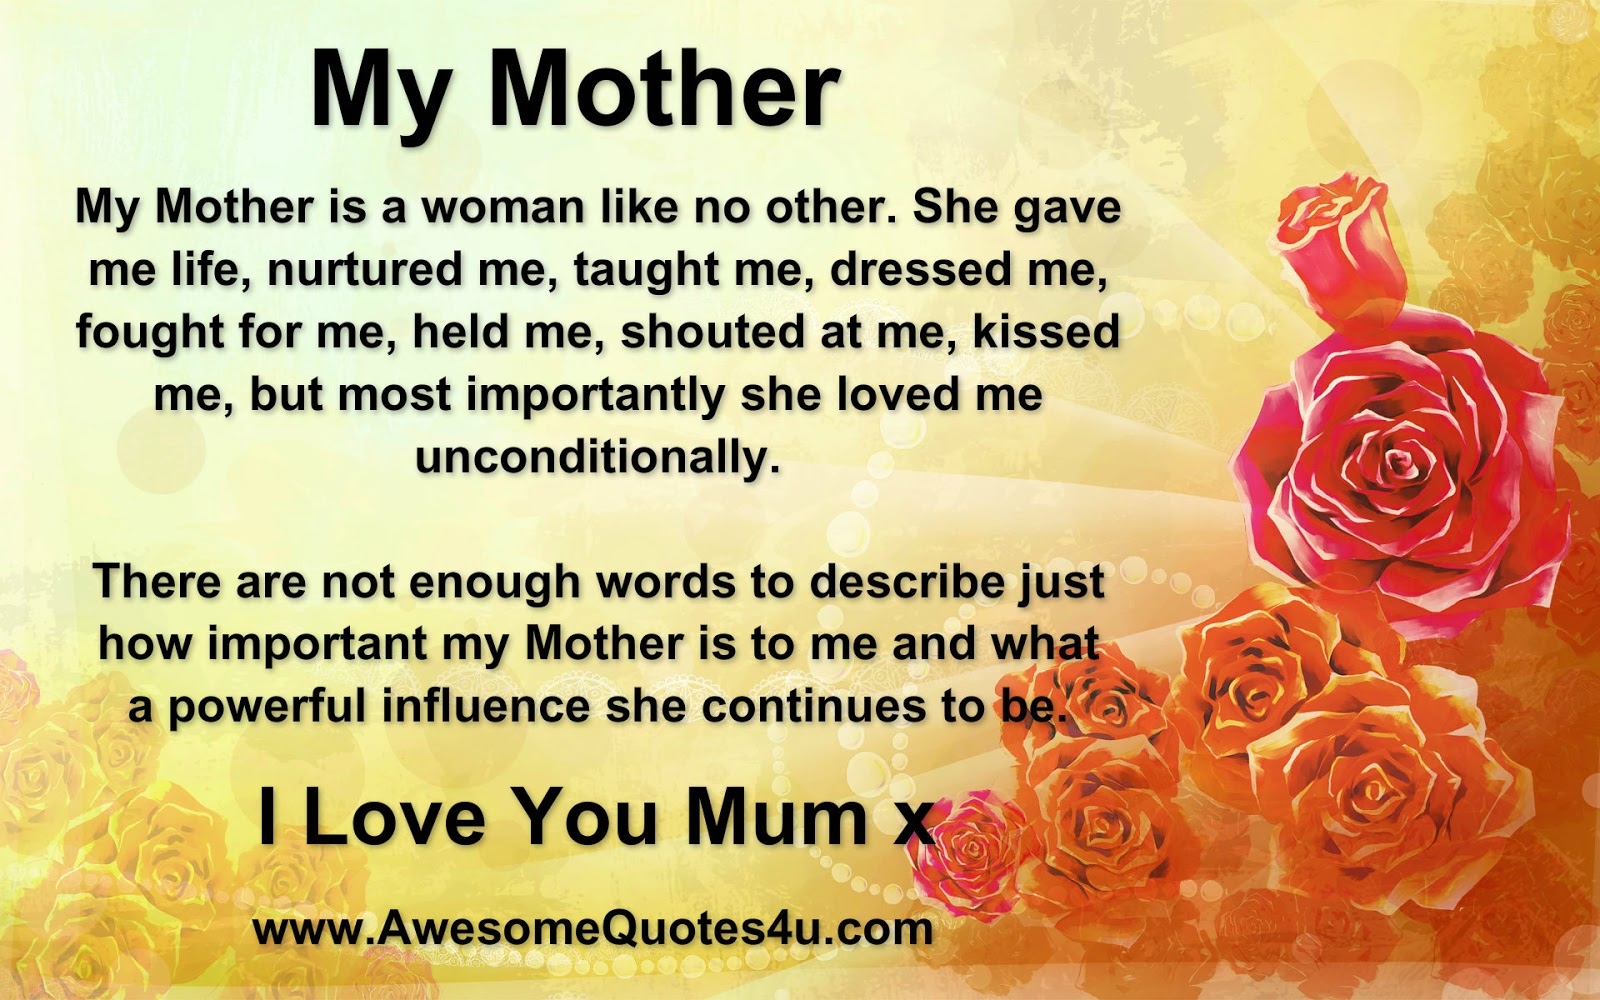 I Love You Mom Quotes In Spanish : Awesome Quotes: I Love You MumxI Love You Mom In Spanish